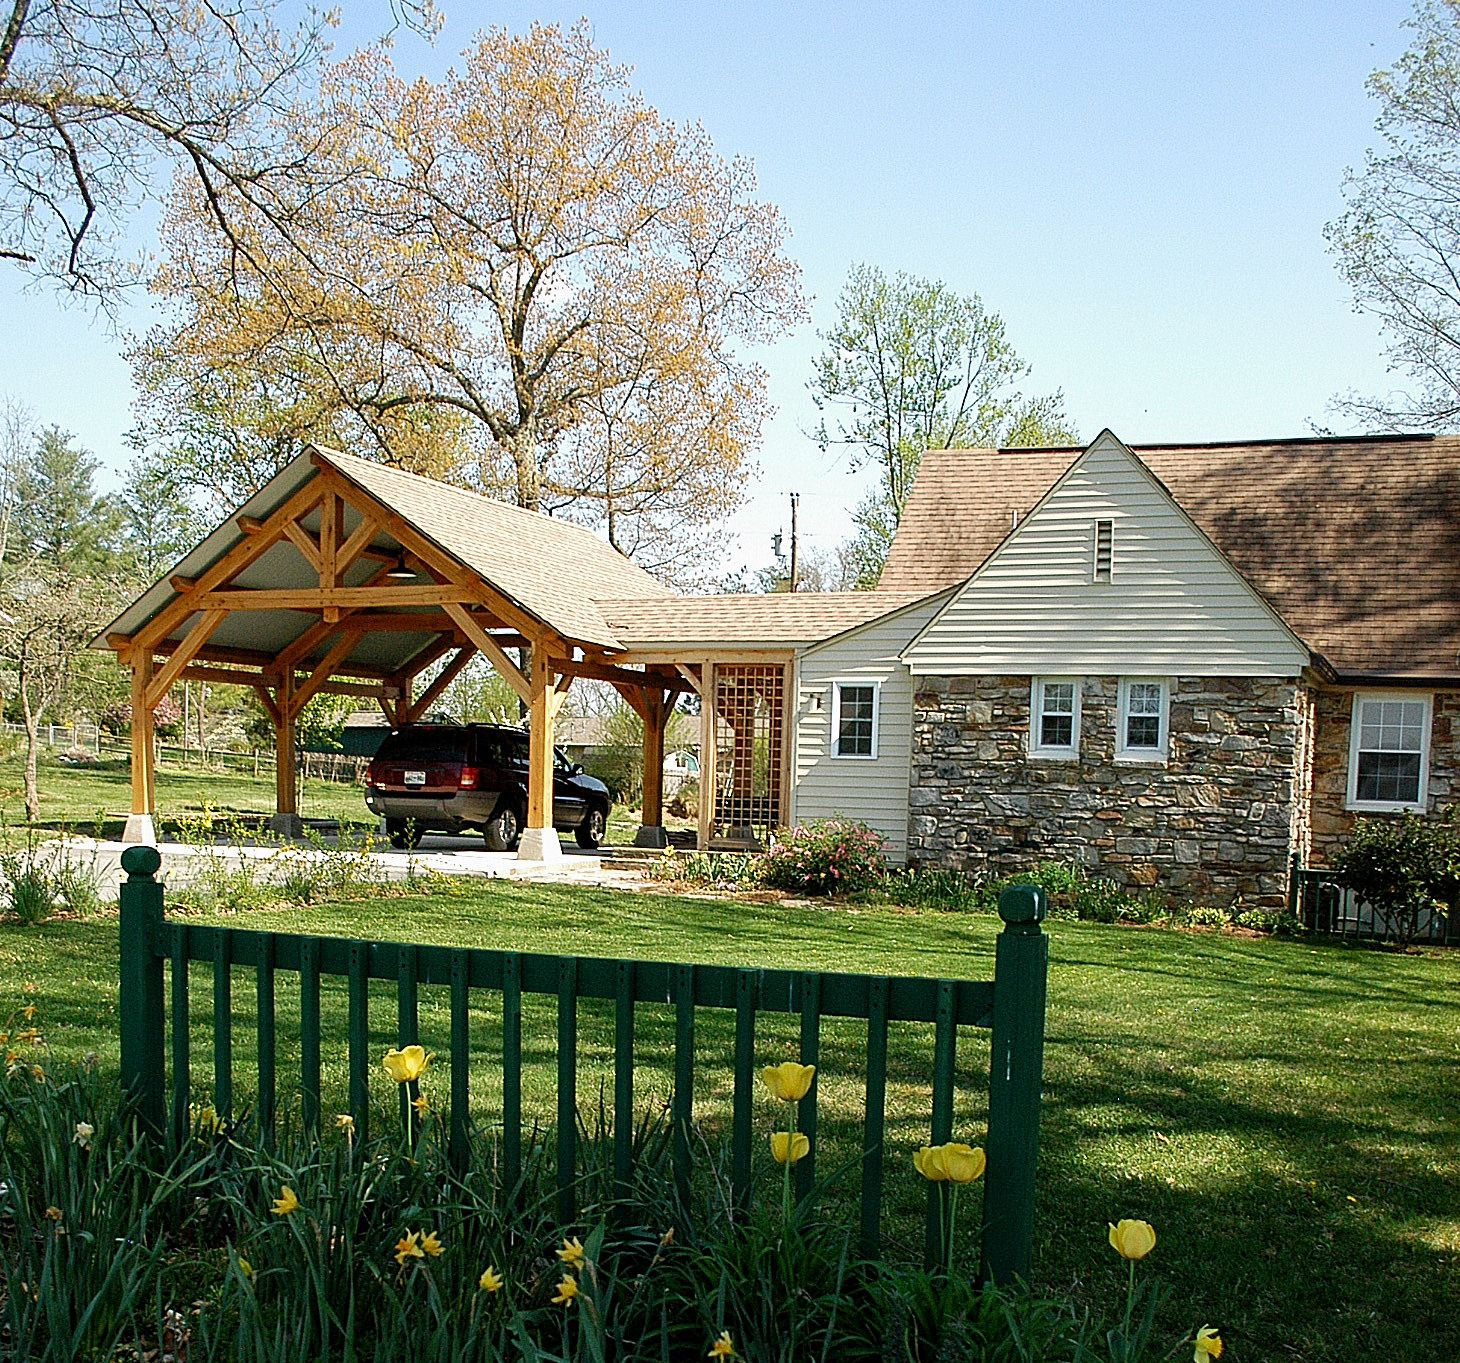 Detached Garage: Timber Frame Pavilion